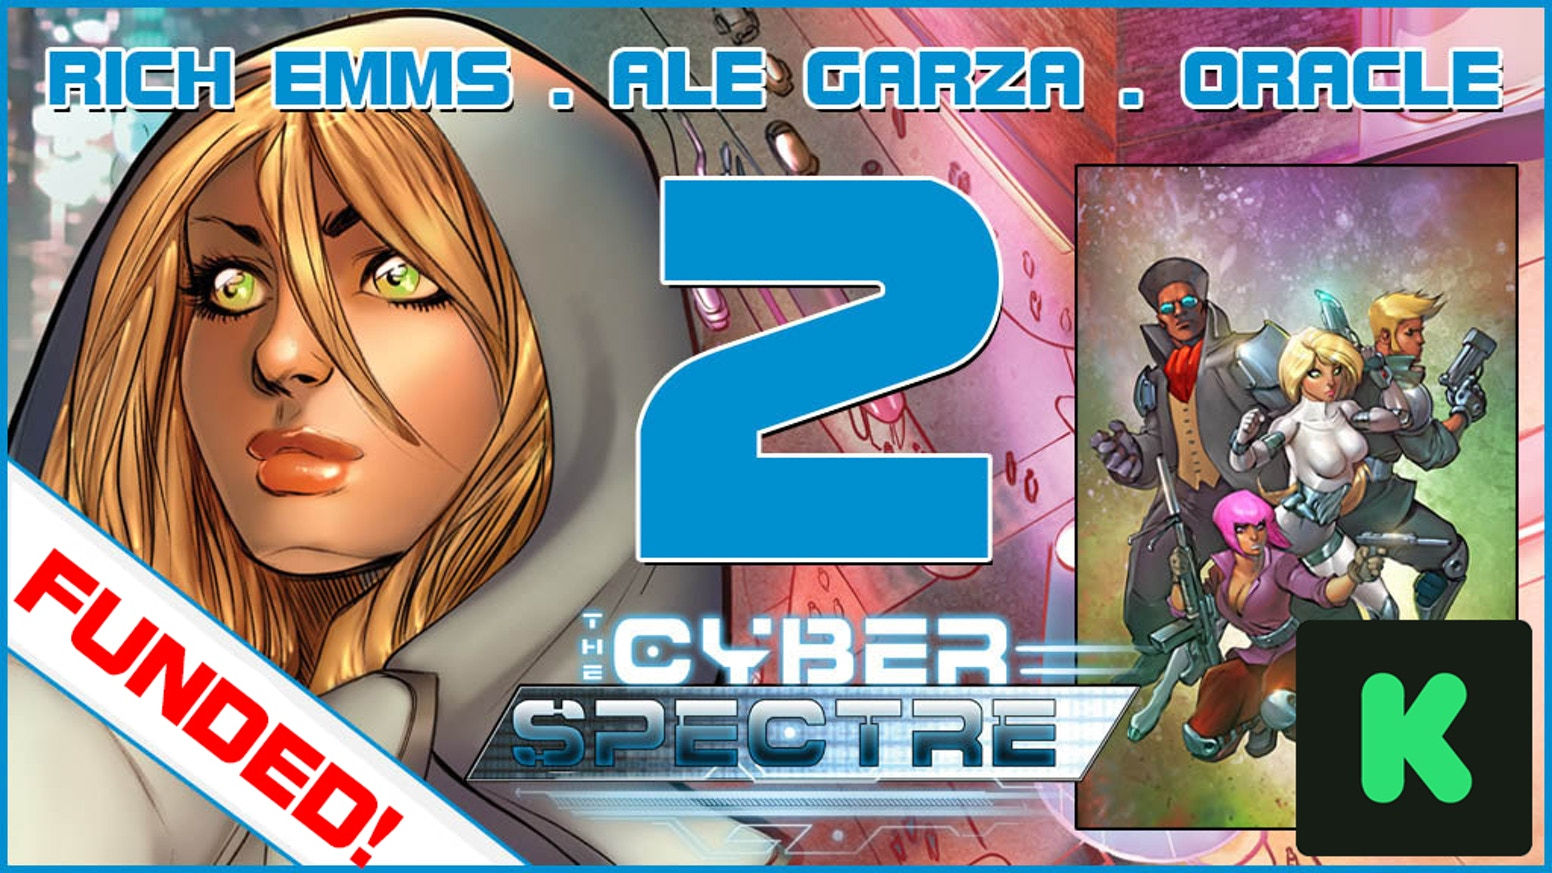 After an amazing Kickstarter Campaign in November, the Cyber Spectre team are working on the next issue -- with even more incentives!!